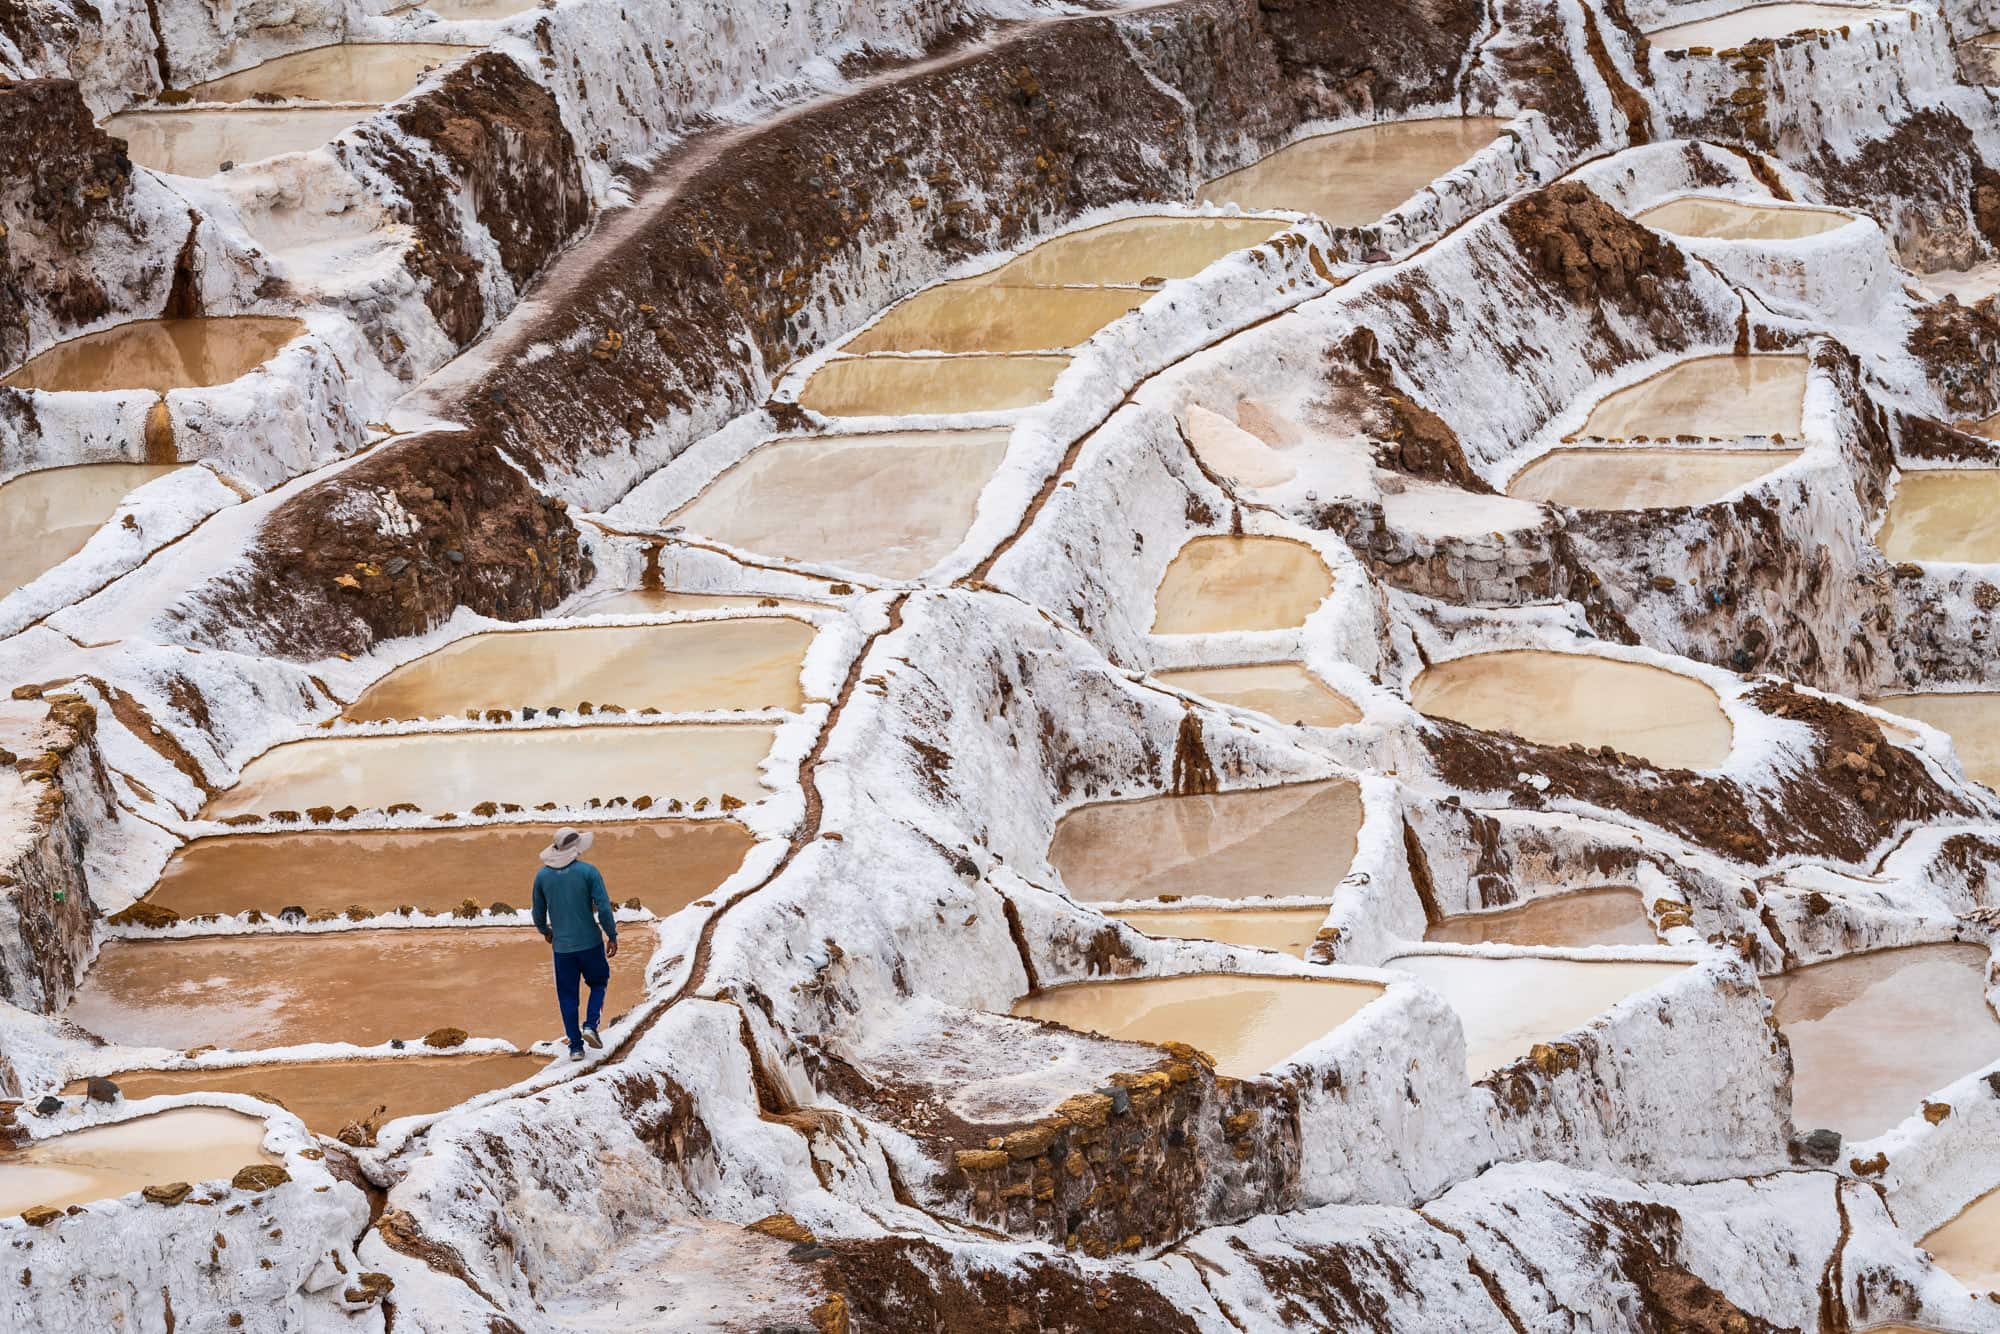 Worker at salinas de Maras